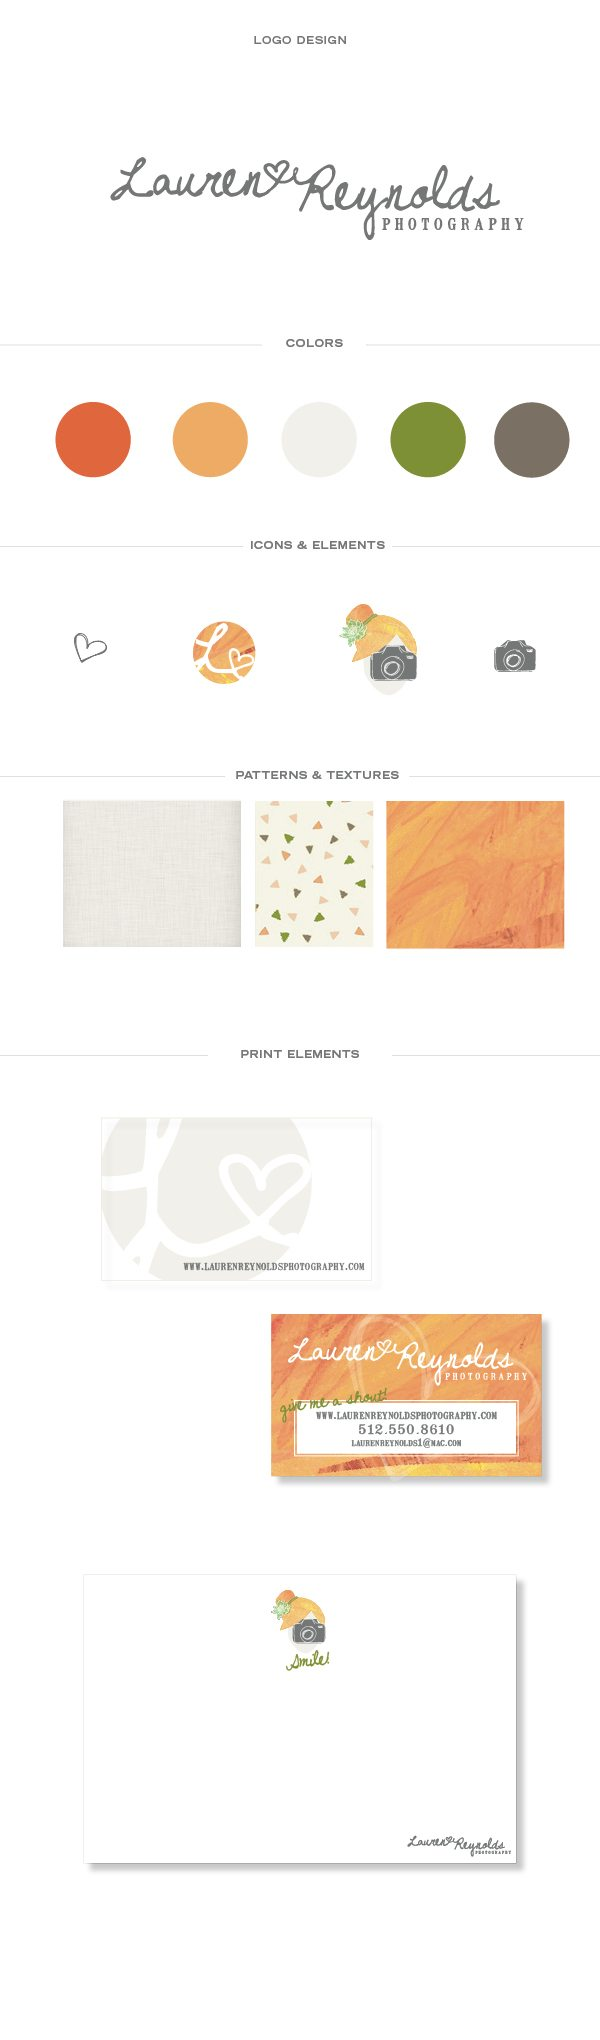 austin, texas, branding agency, handcrafted brand, friendly brand, custom identity, photographer brand identity